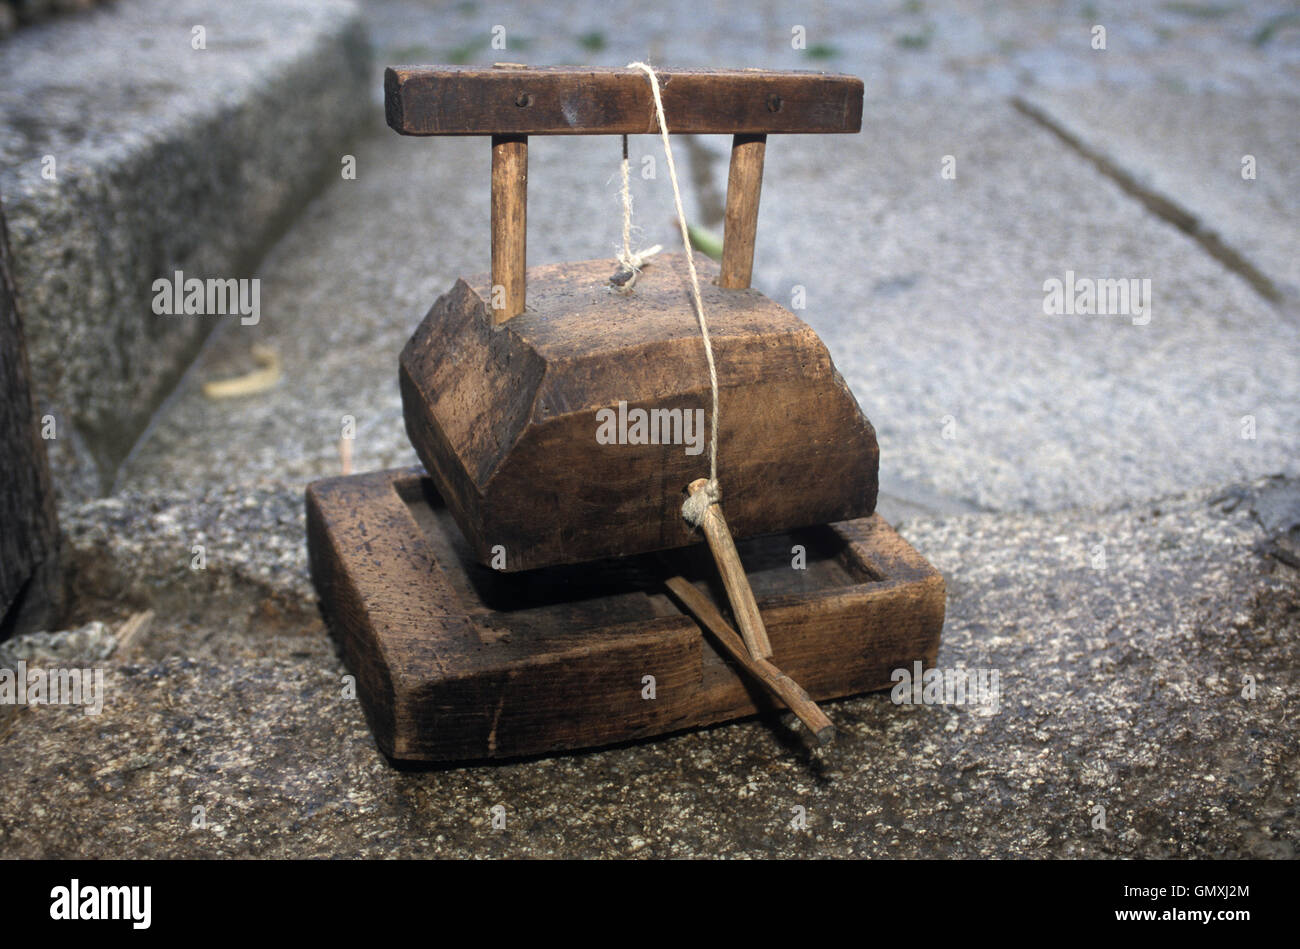 Artisanal mouse trap. Portugal - Stock Image